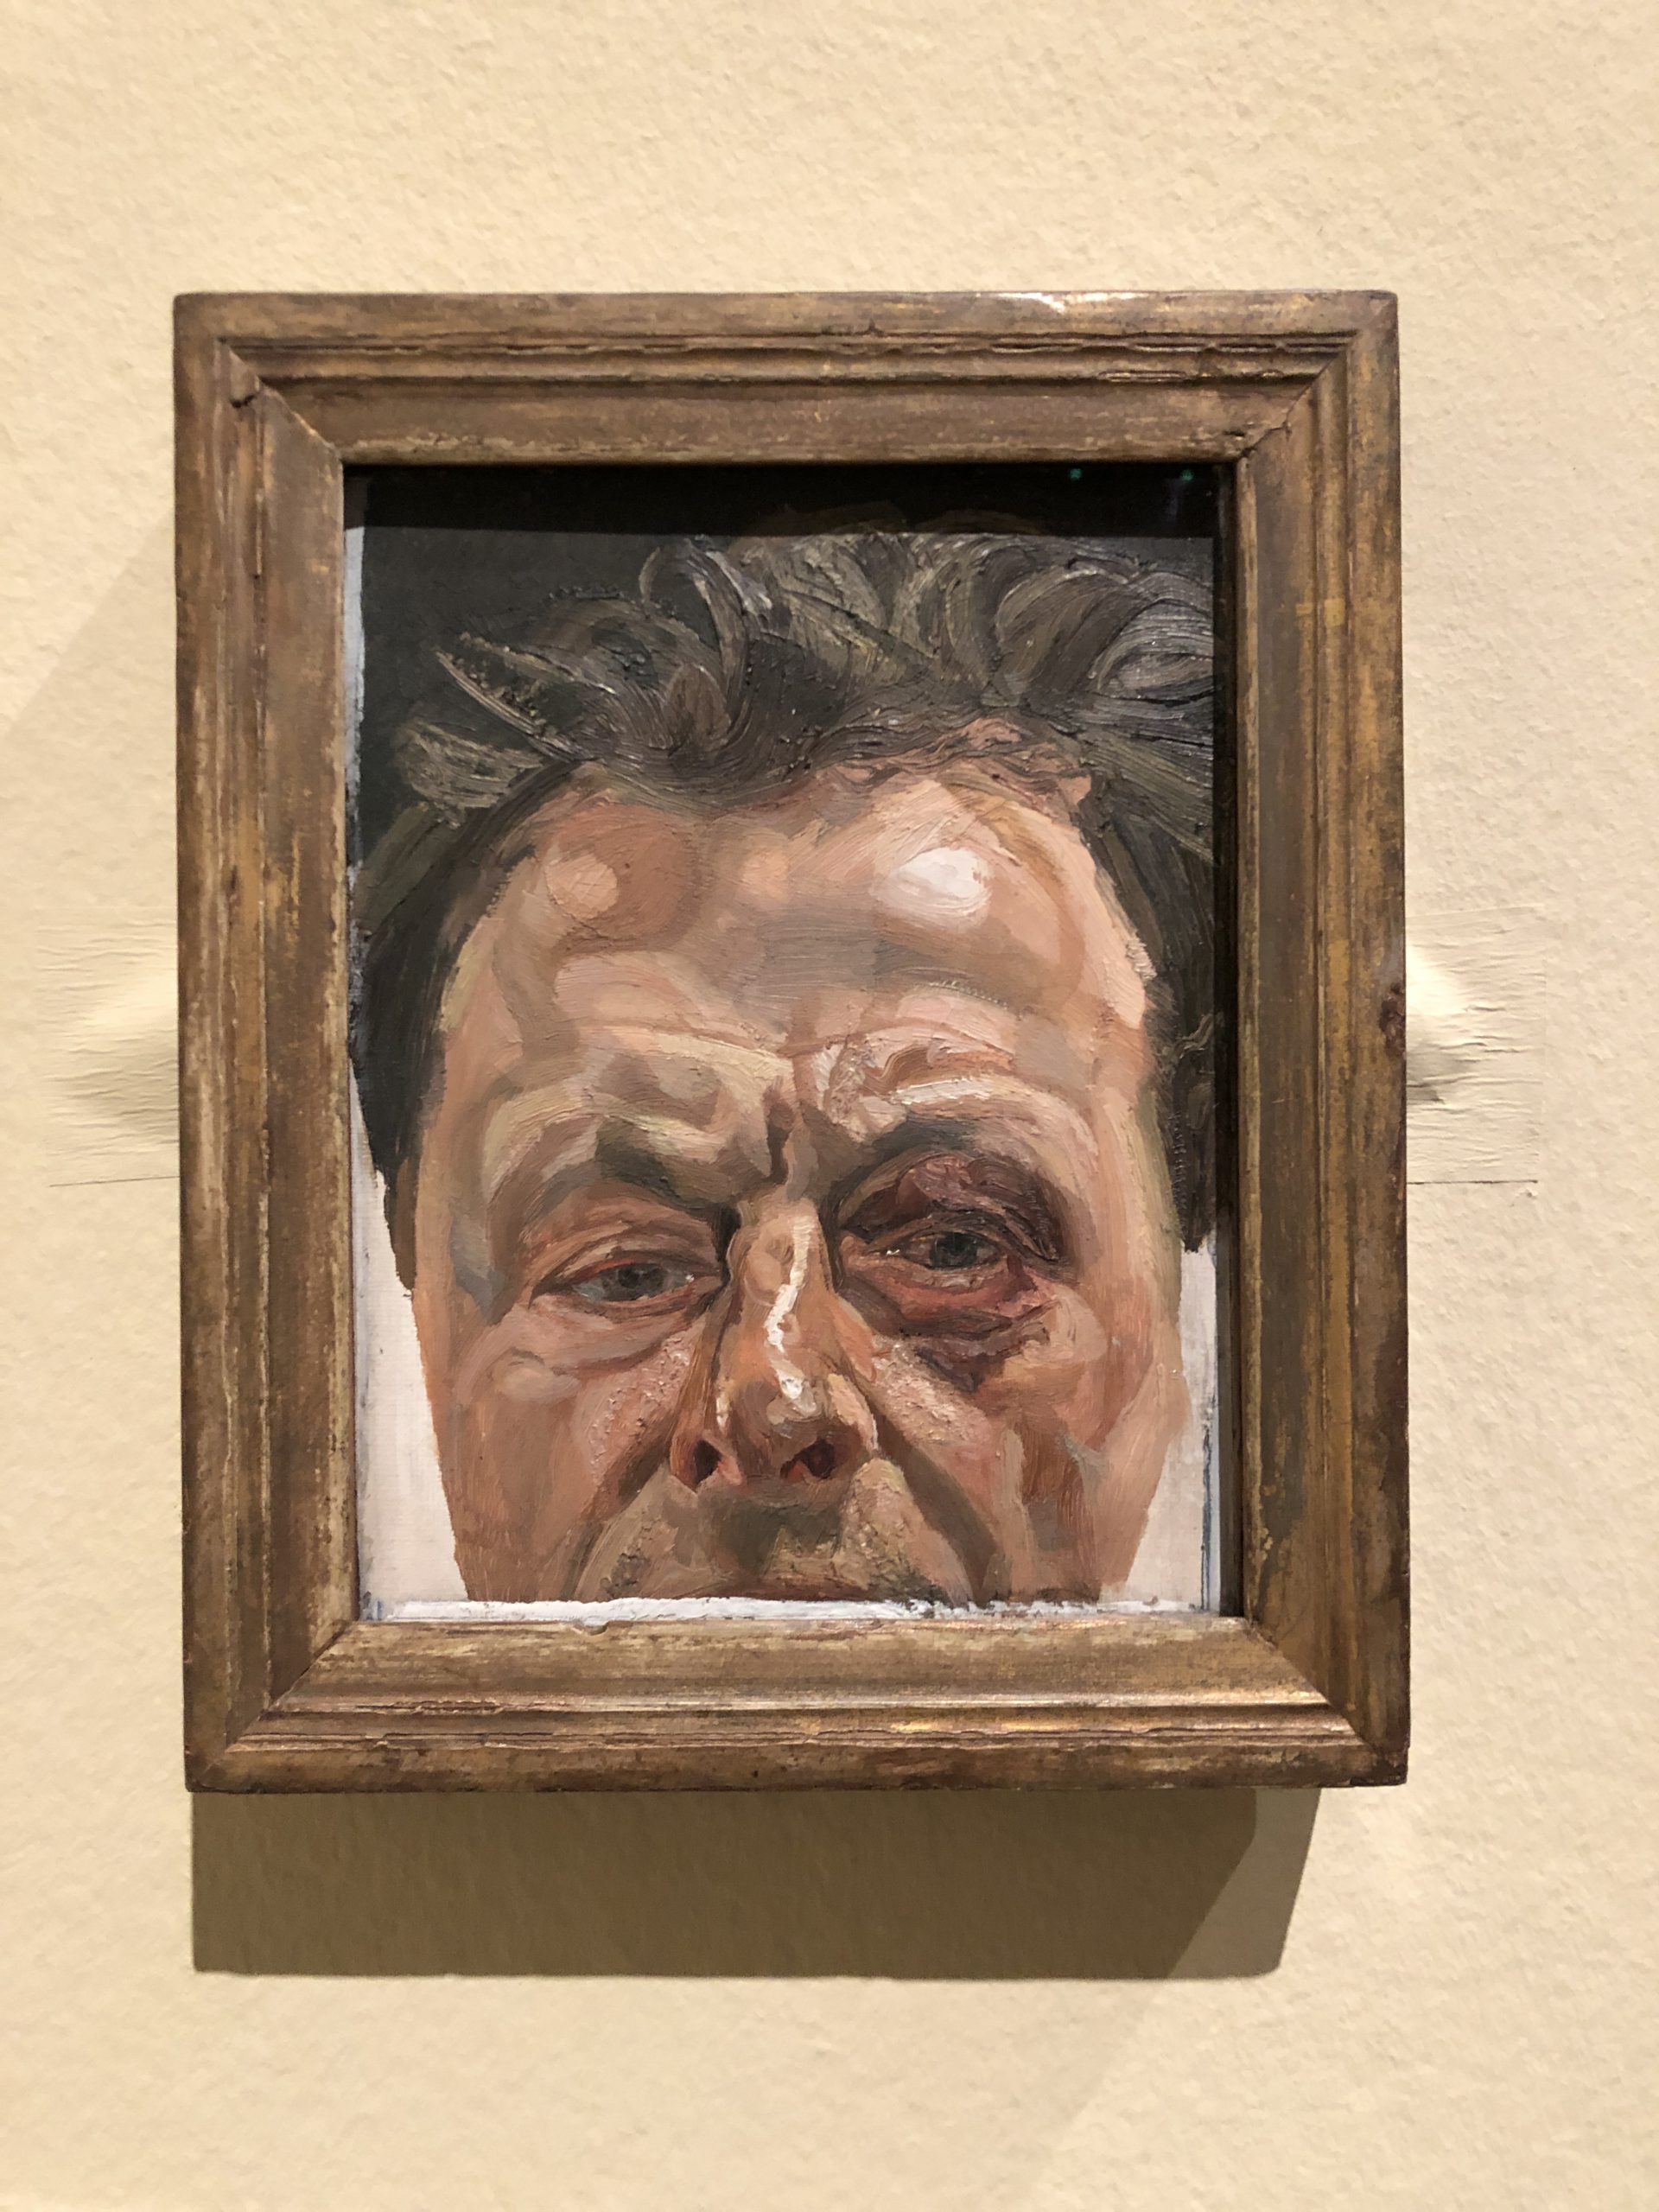 Image of artwork titled Self portrait with black eye by artist Lucian Freud